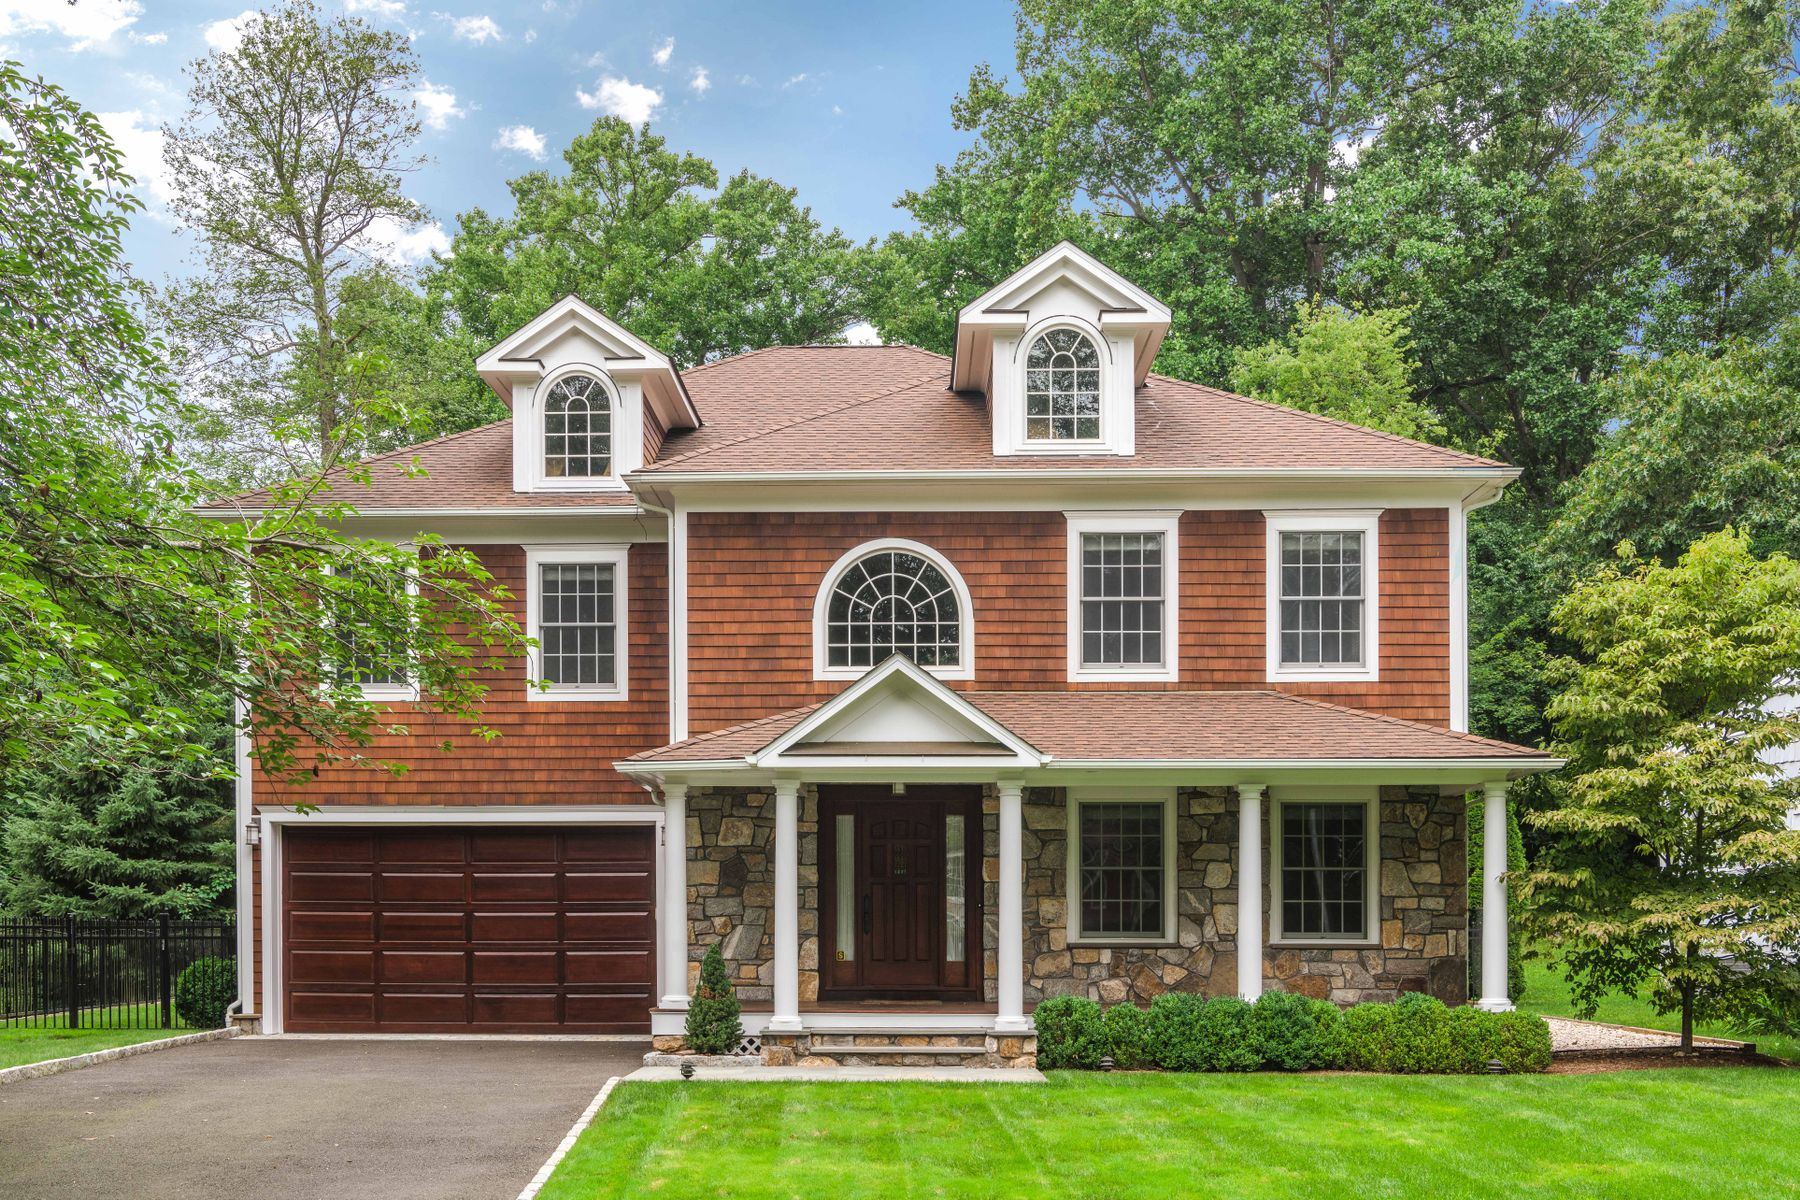 Single Family Home for Sale at 66 Gregory Road 66 Gregory Road Cos Cob, Connecticut 06807 United States